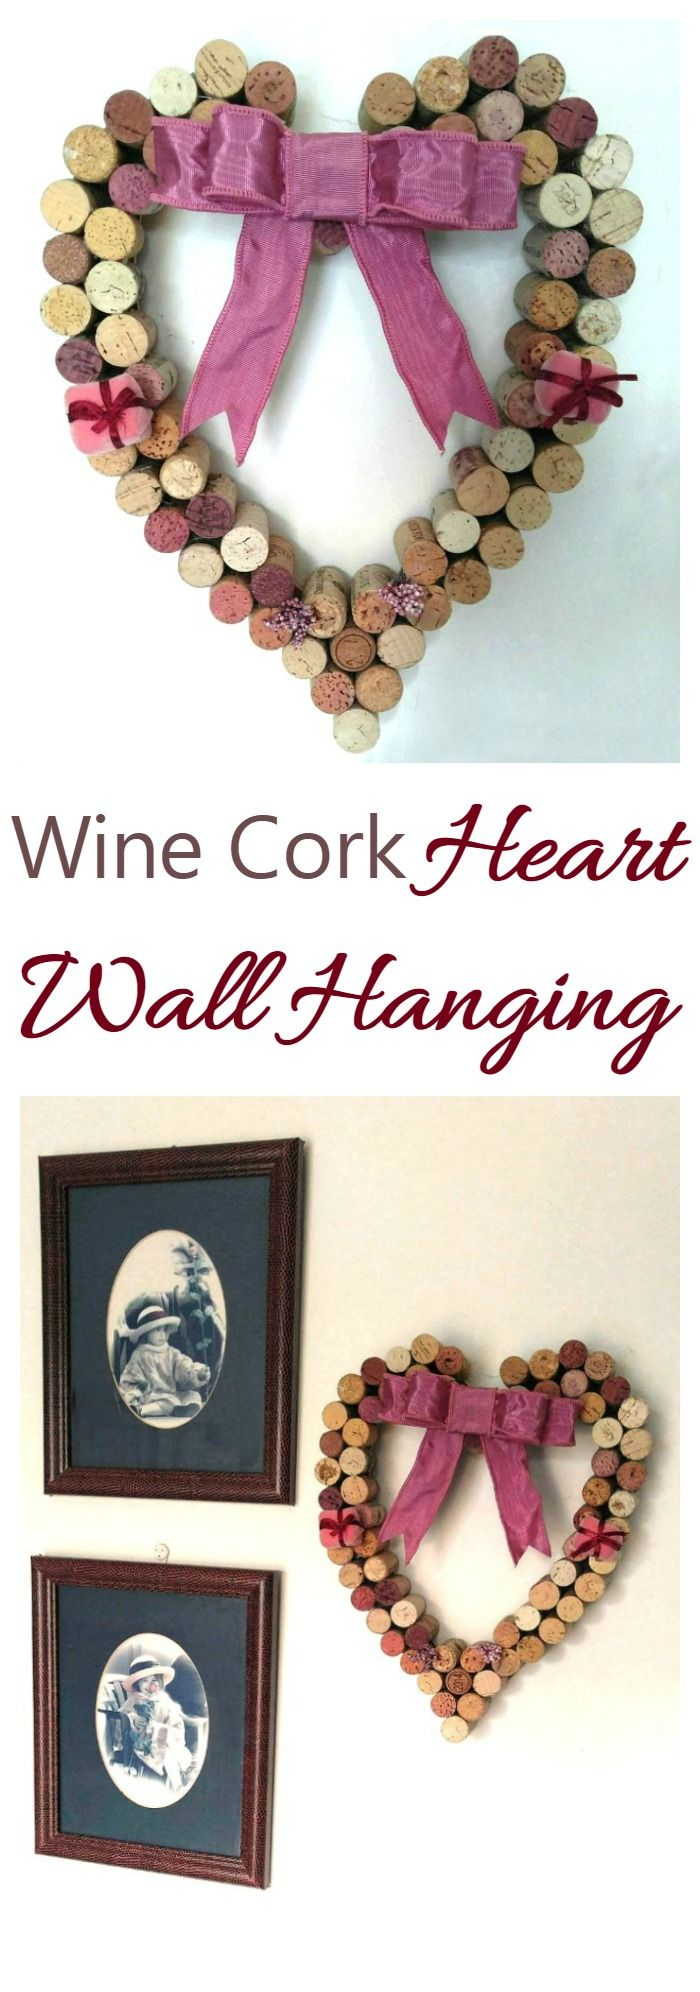 This Wine Cork Heart Wall Hanging goes beautifully with these framed photos made from anniversary cards.  It makes a romantic home decor item.